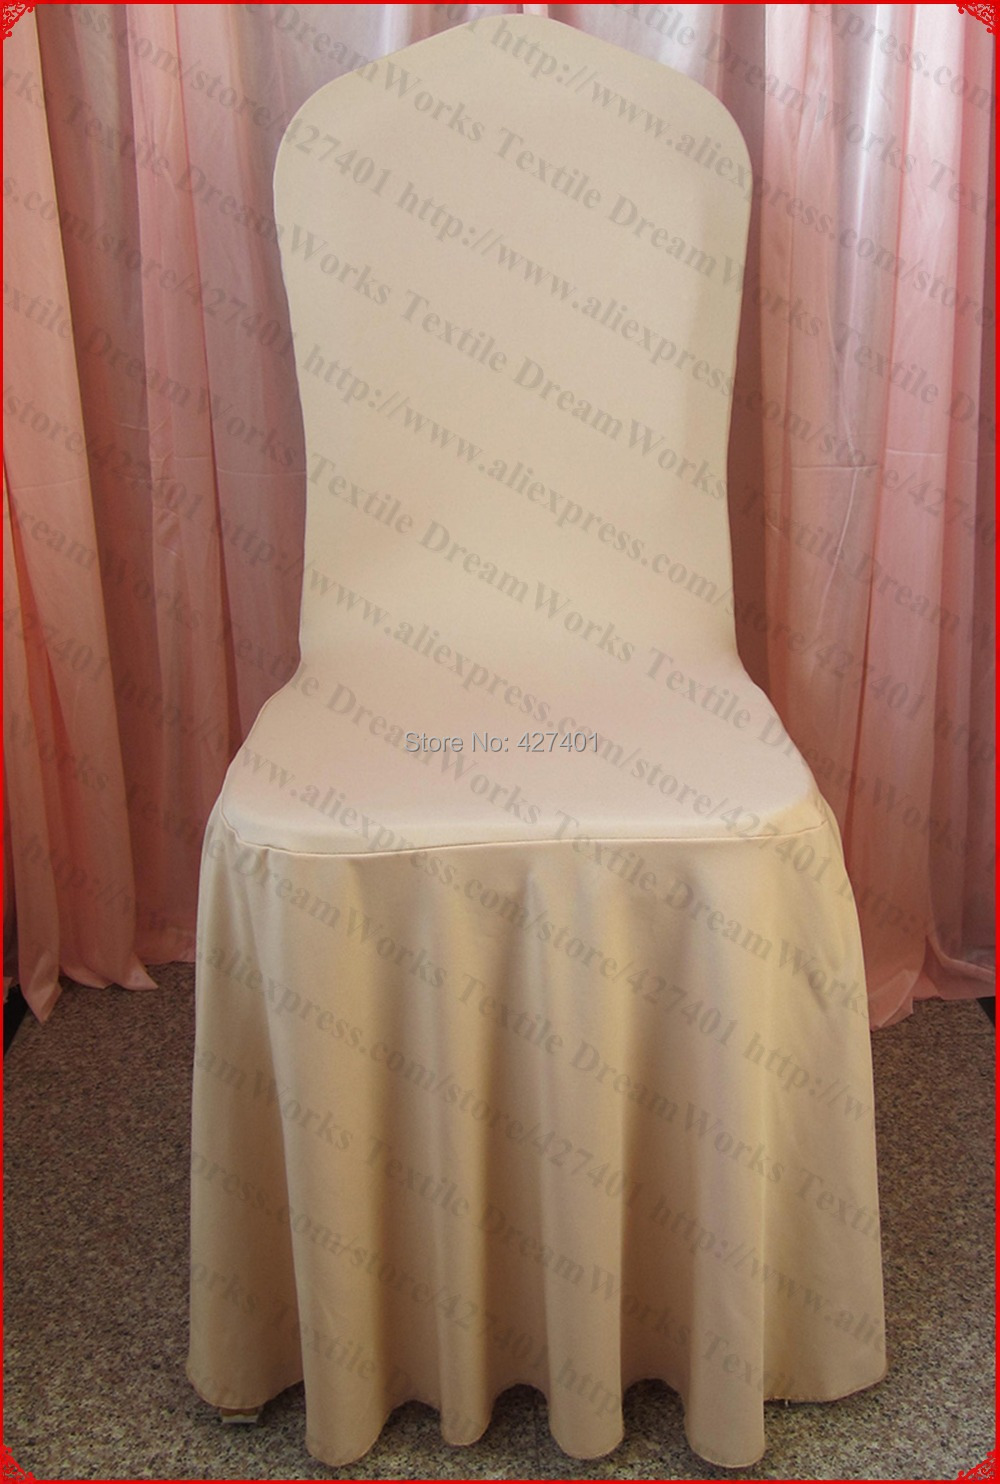 Champagne Chair Covers Us 459 Champagne Color Elegant Pleated Swag Spandex Chair Cover Lycra Chair Cover Backdrop For Wedding Party Banquet Home Decorations In Chair